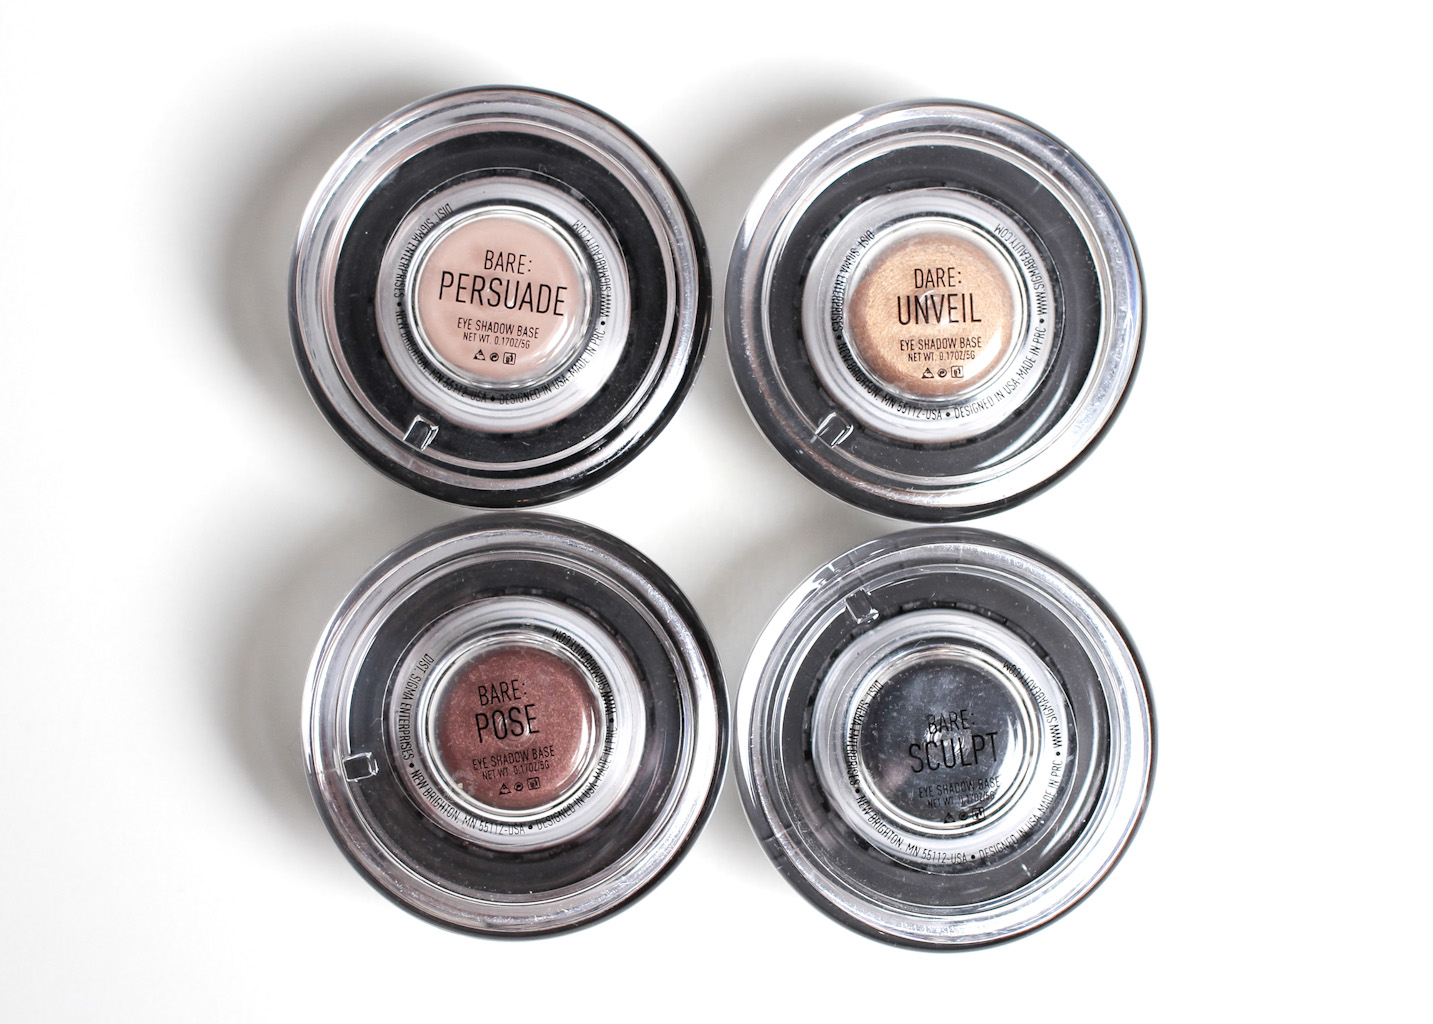 all four shadows together, Persuade, Unveil, Pose and Sculpt